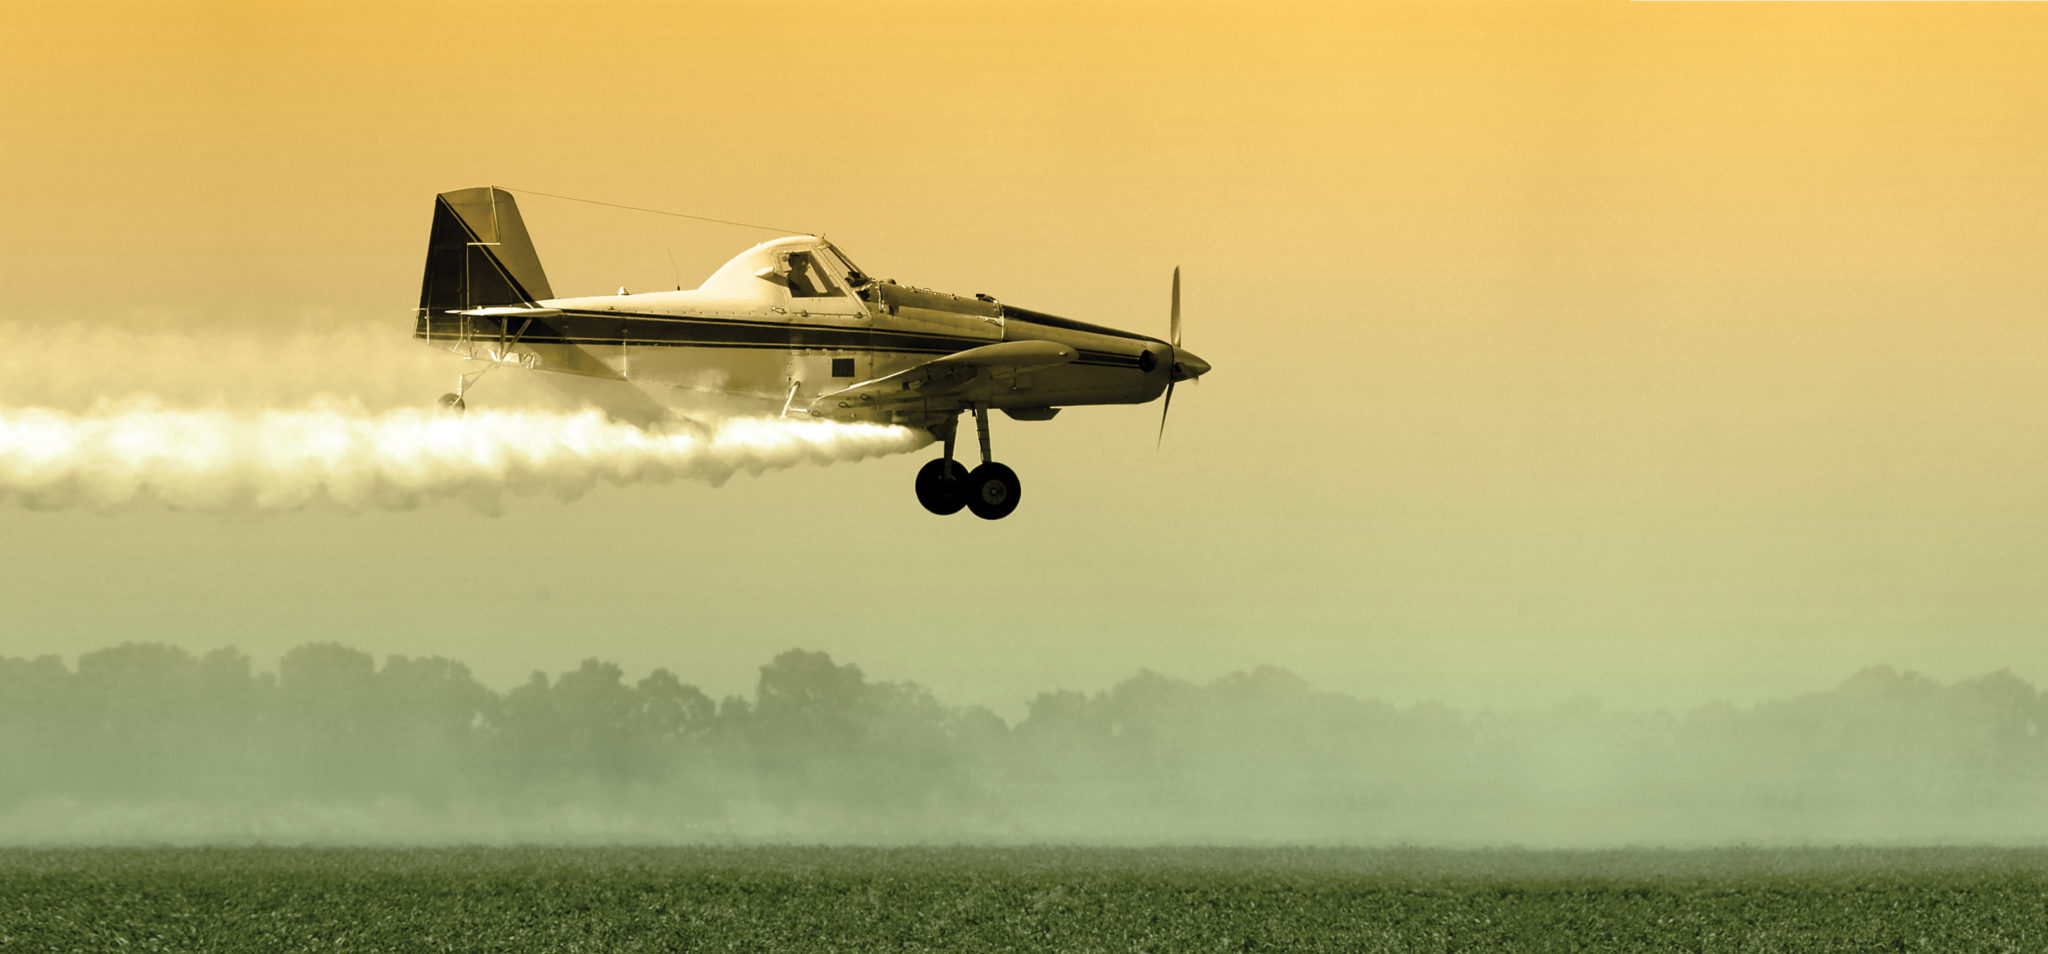 Image result for crop dusting large